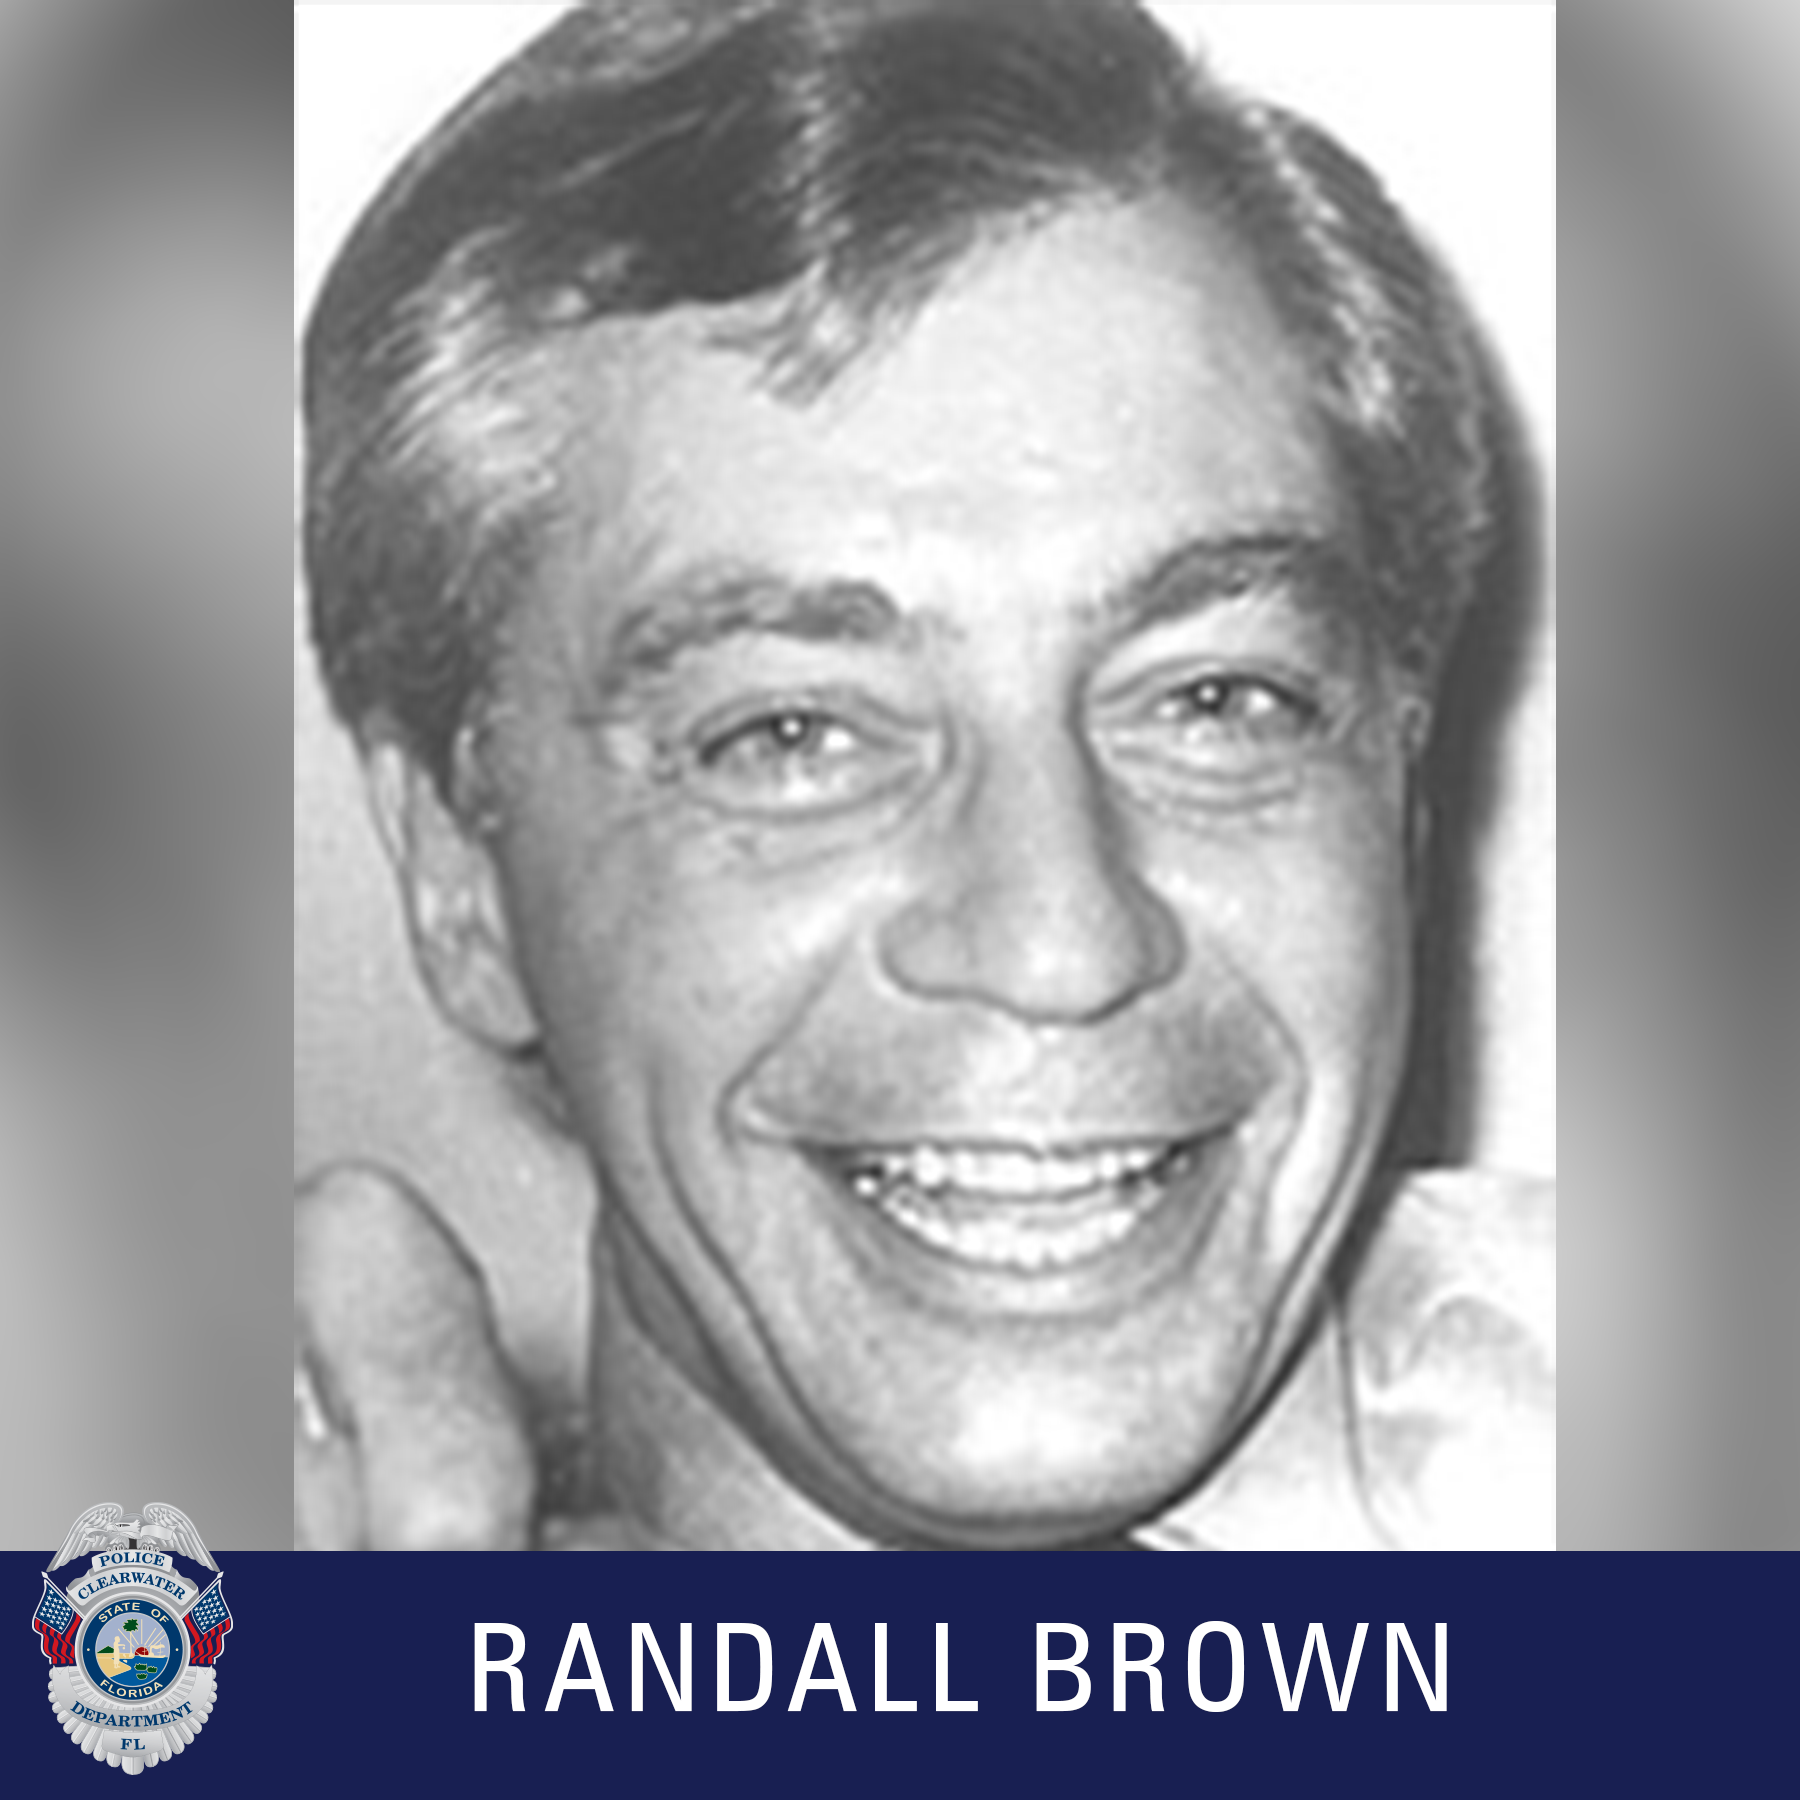 Randall Brown, Clearwater Police Department Shield, Black and white photo of a male smiling